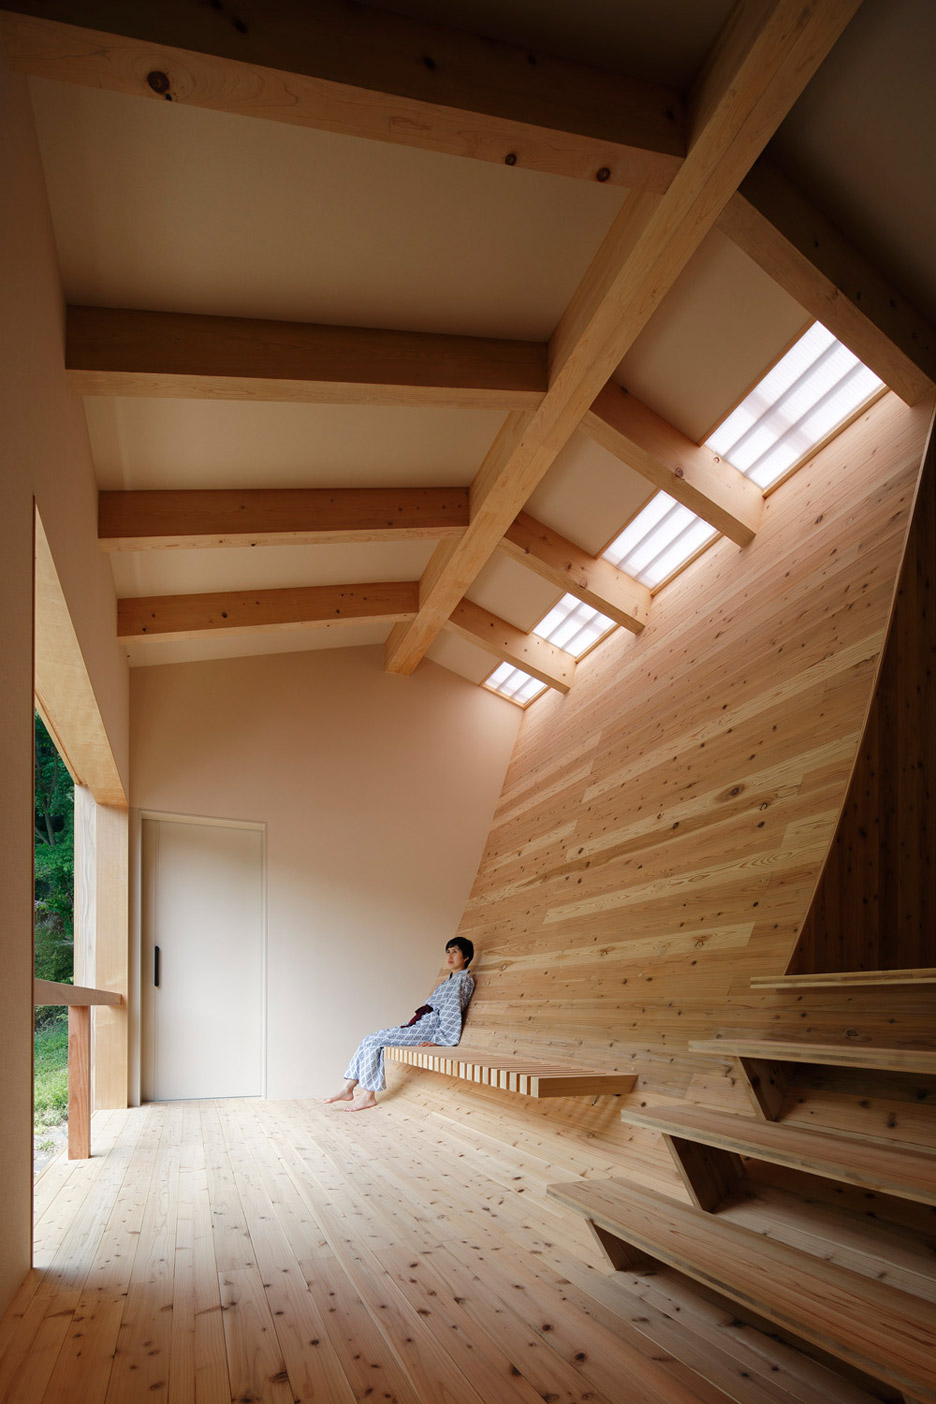 Bath House Maruhon by Kubo Tsushima Architects